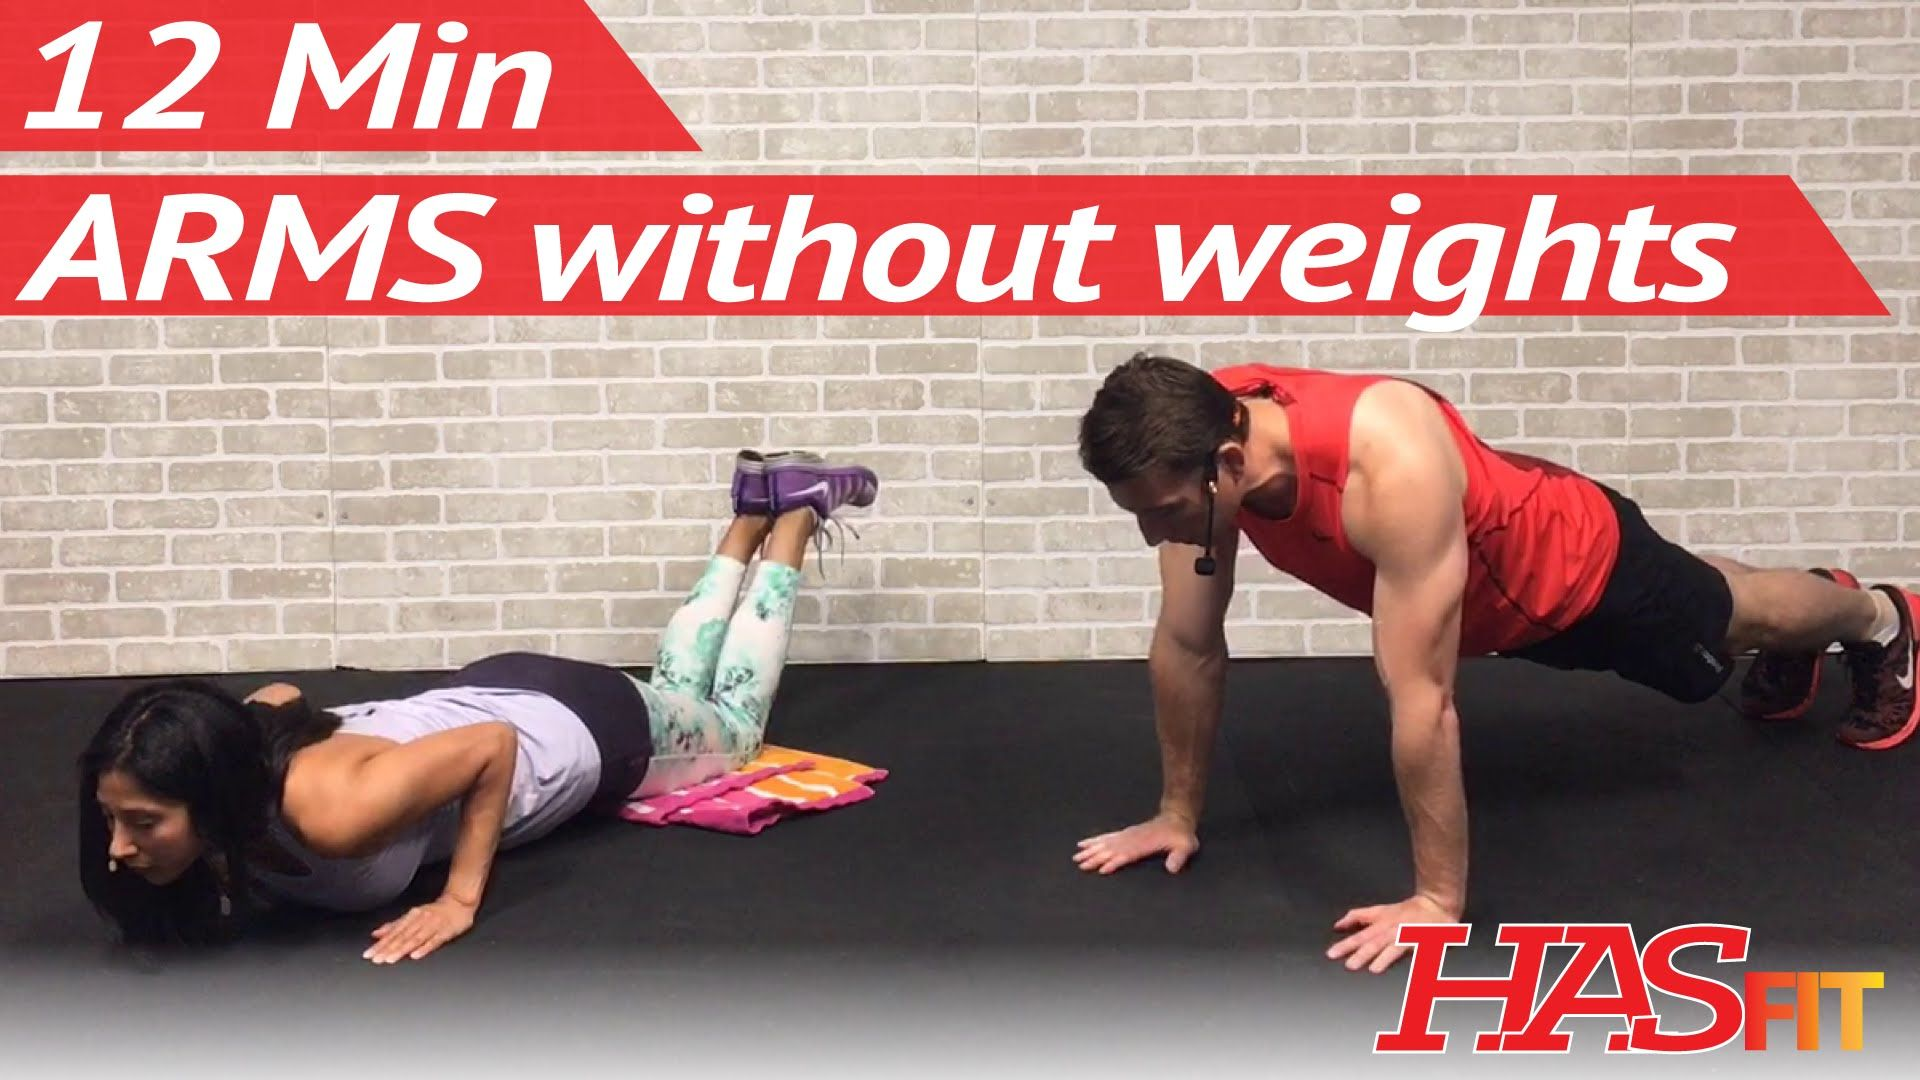 12 Min Arm Workout Without Weights For Women Men